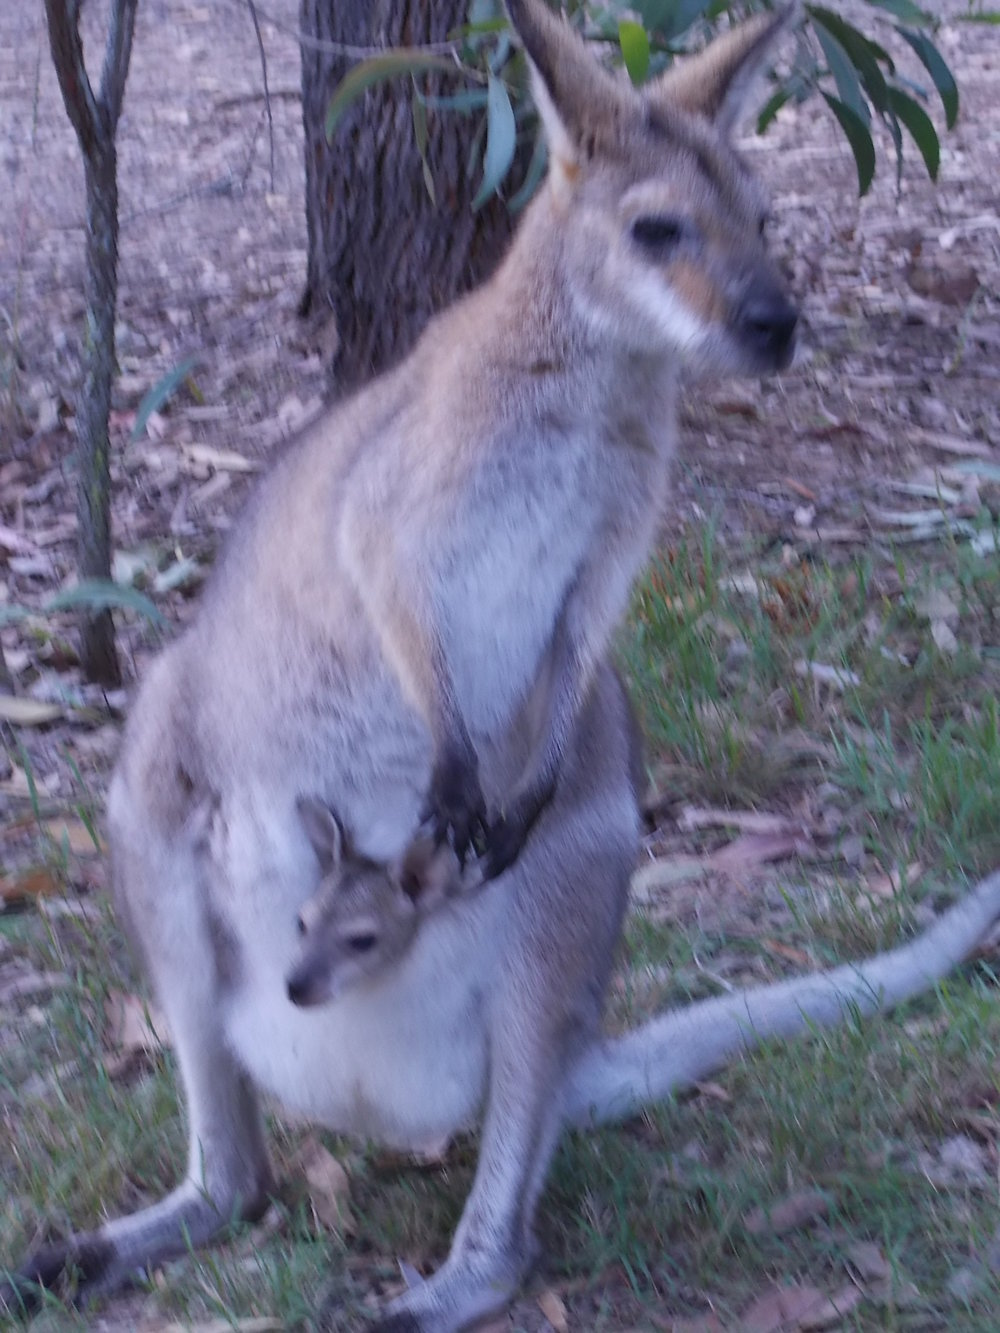 Wallaby and Joey in its pouch